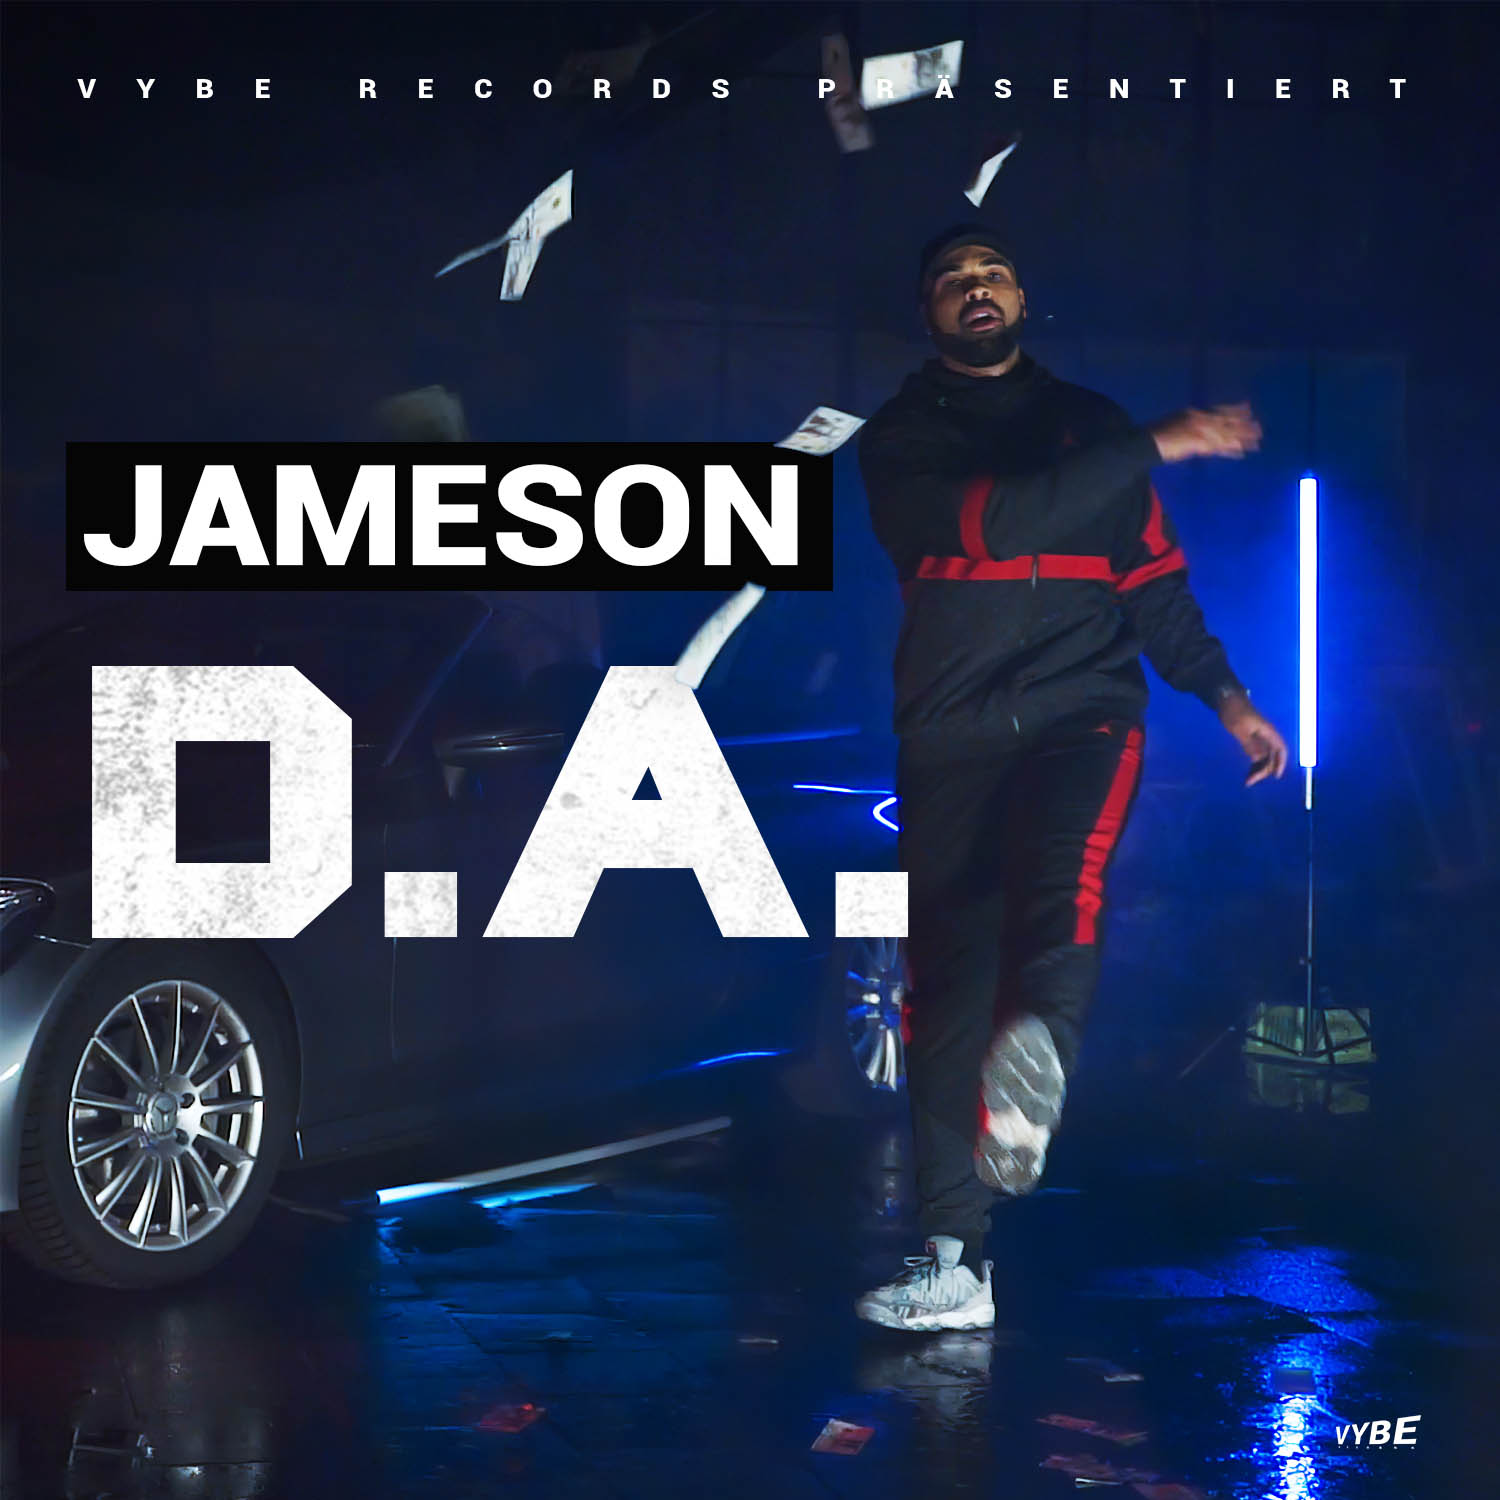 Upcoming: Jameson - D. A.